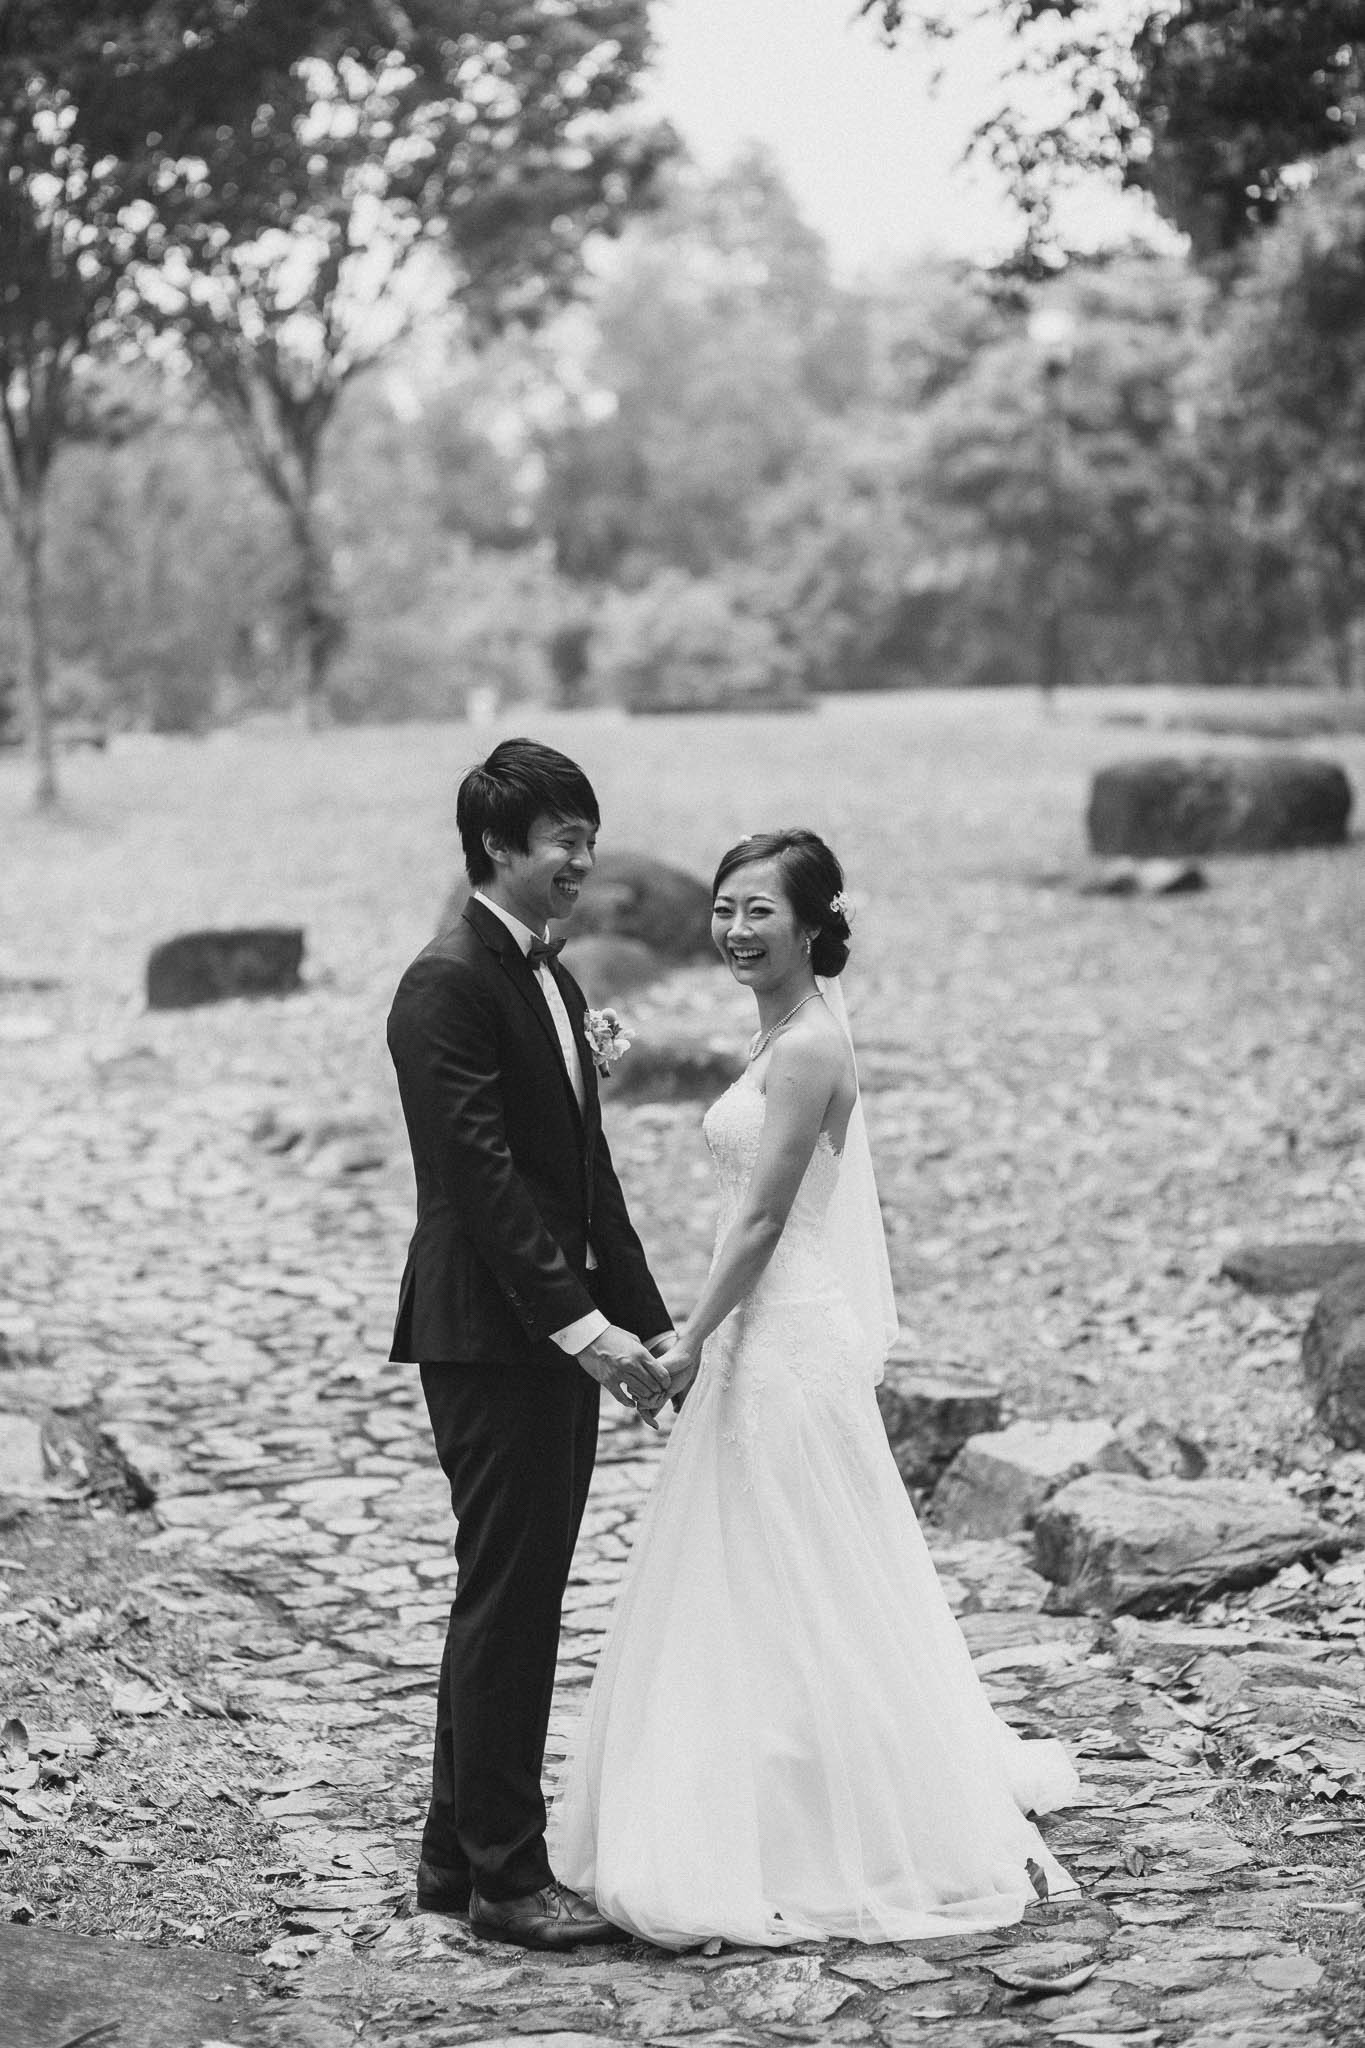 singapore-wedding-photographer-travel-senghan-huihui-22.jpg